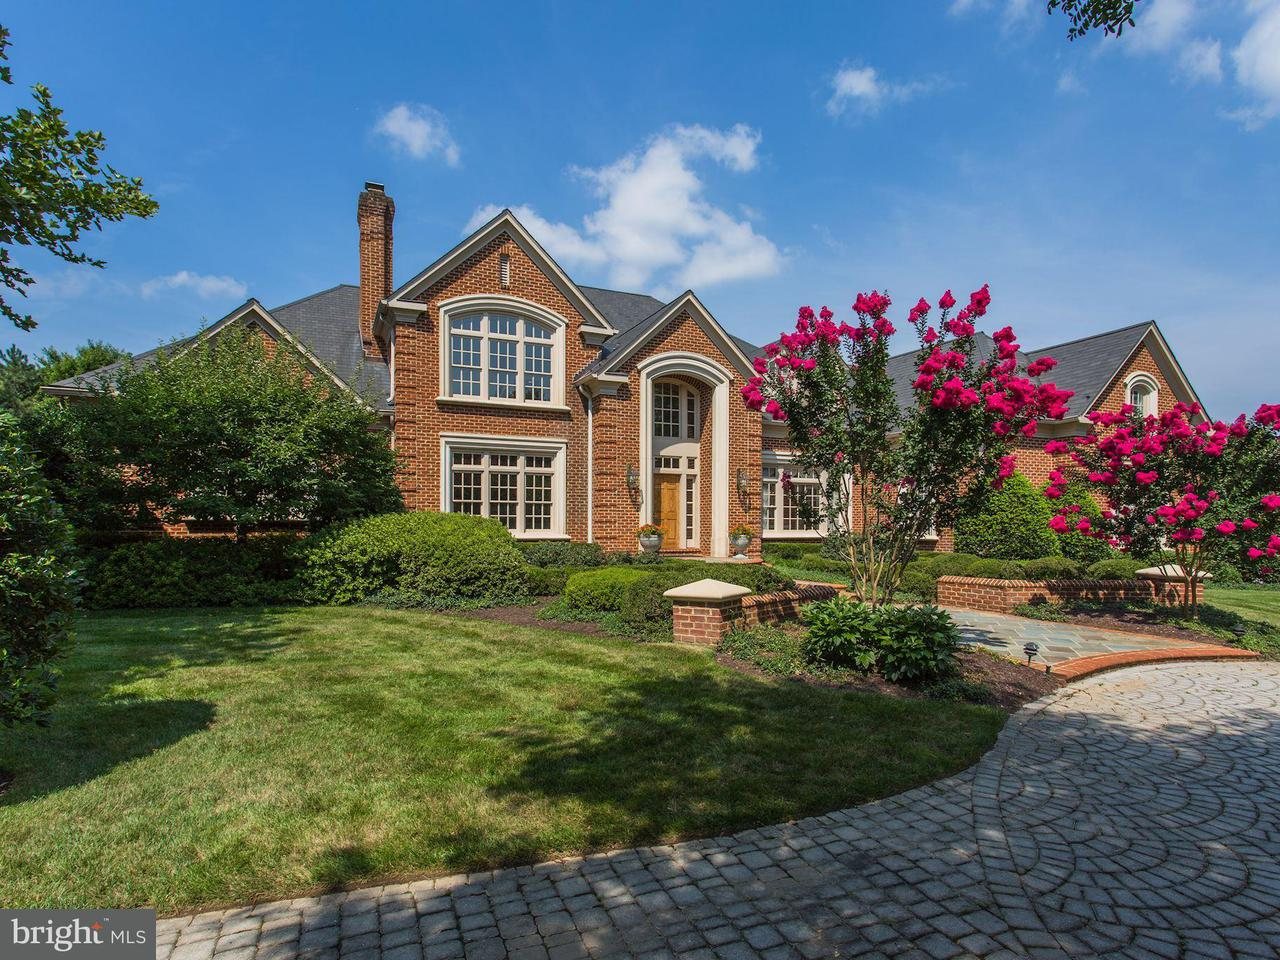 Single Family Home for Sale at 8321 Woodlea Mill Road 8321 Woodlea Mill Road McLean, Virginia 22102 United States